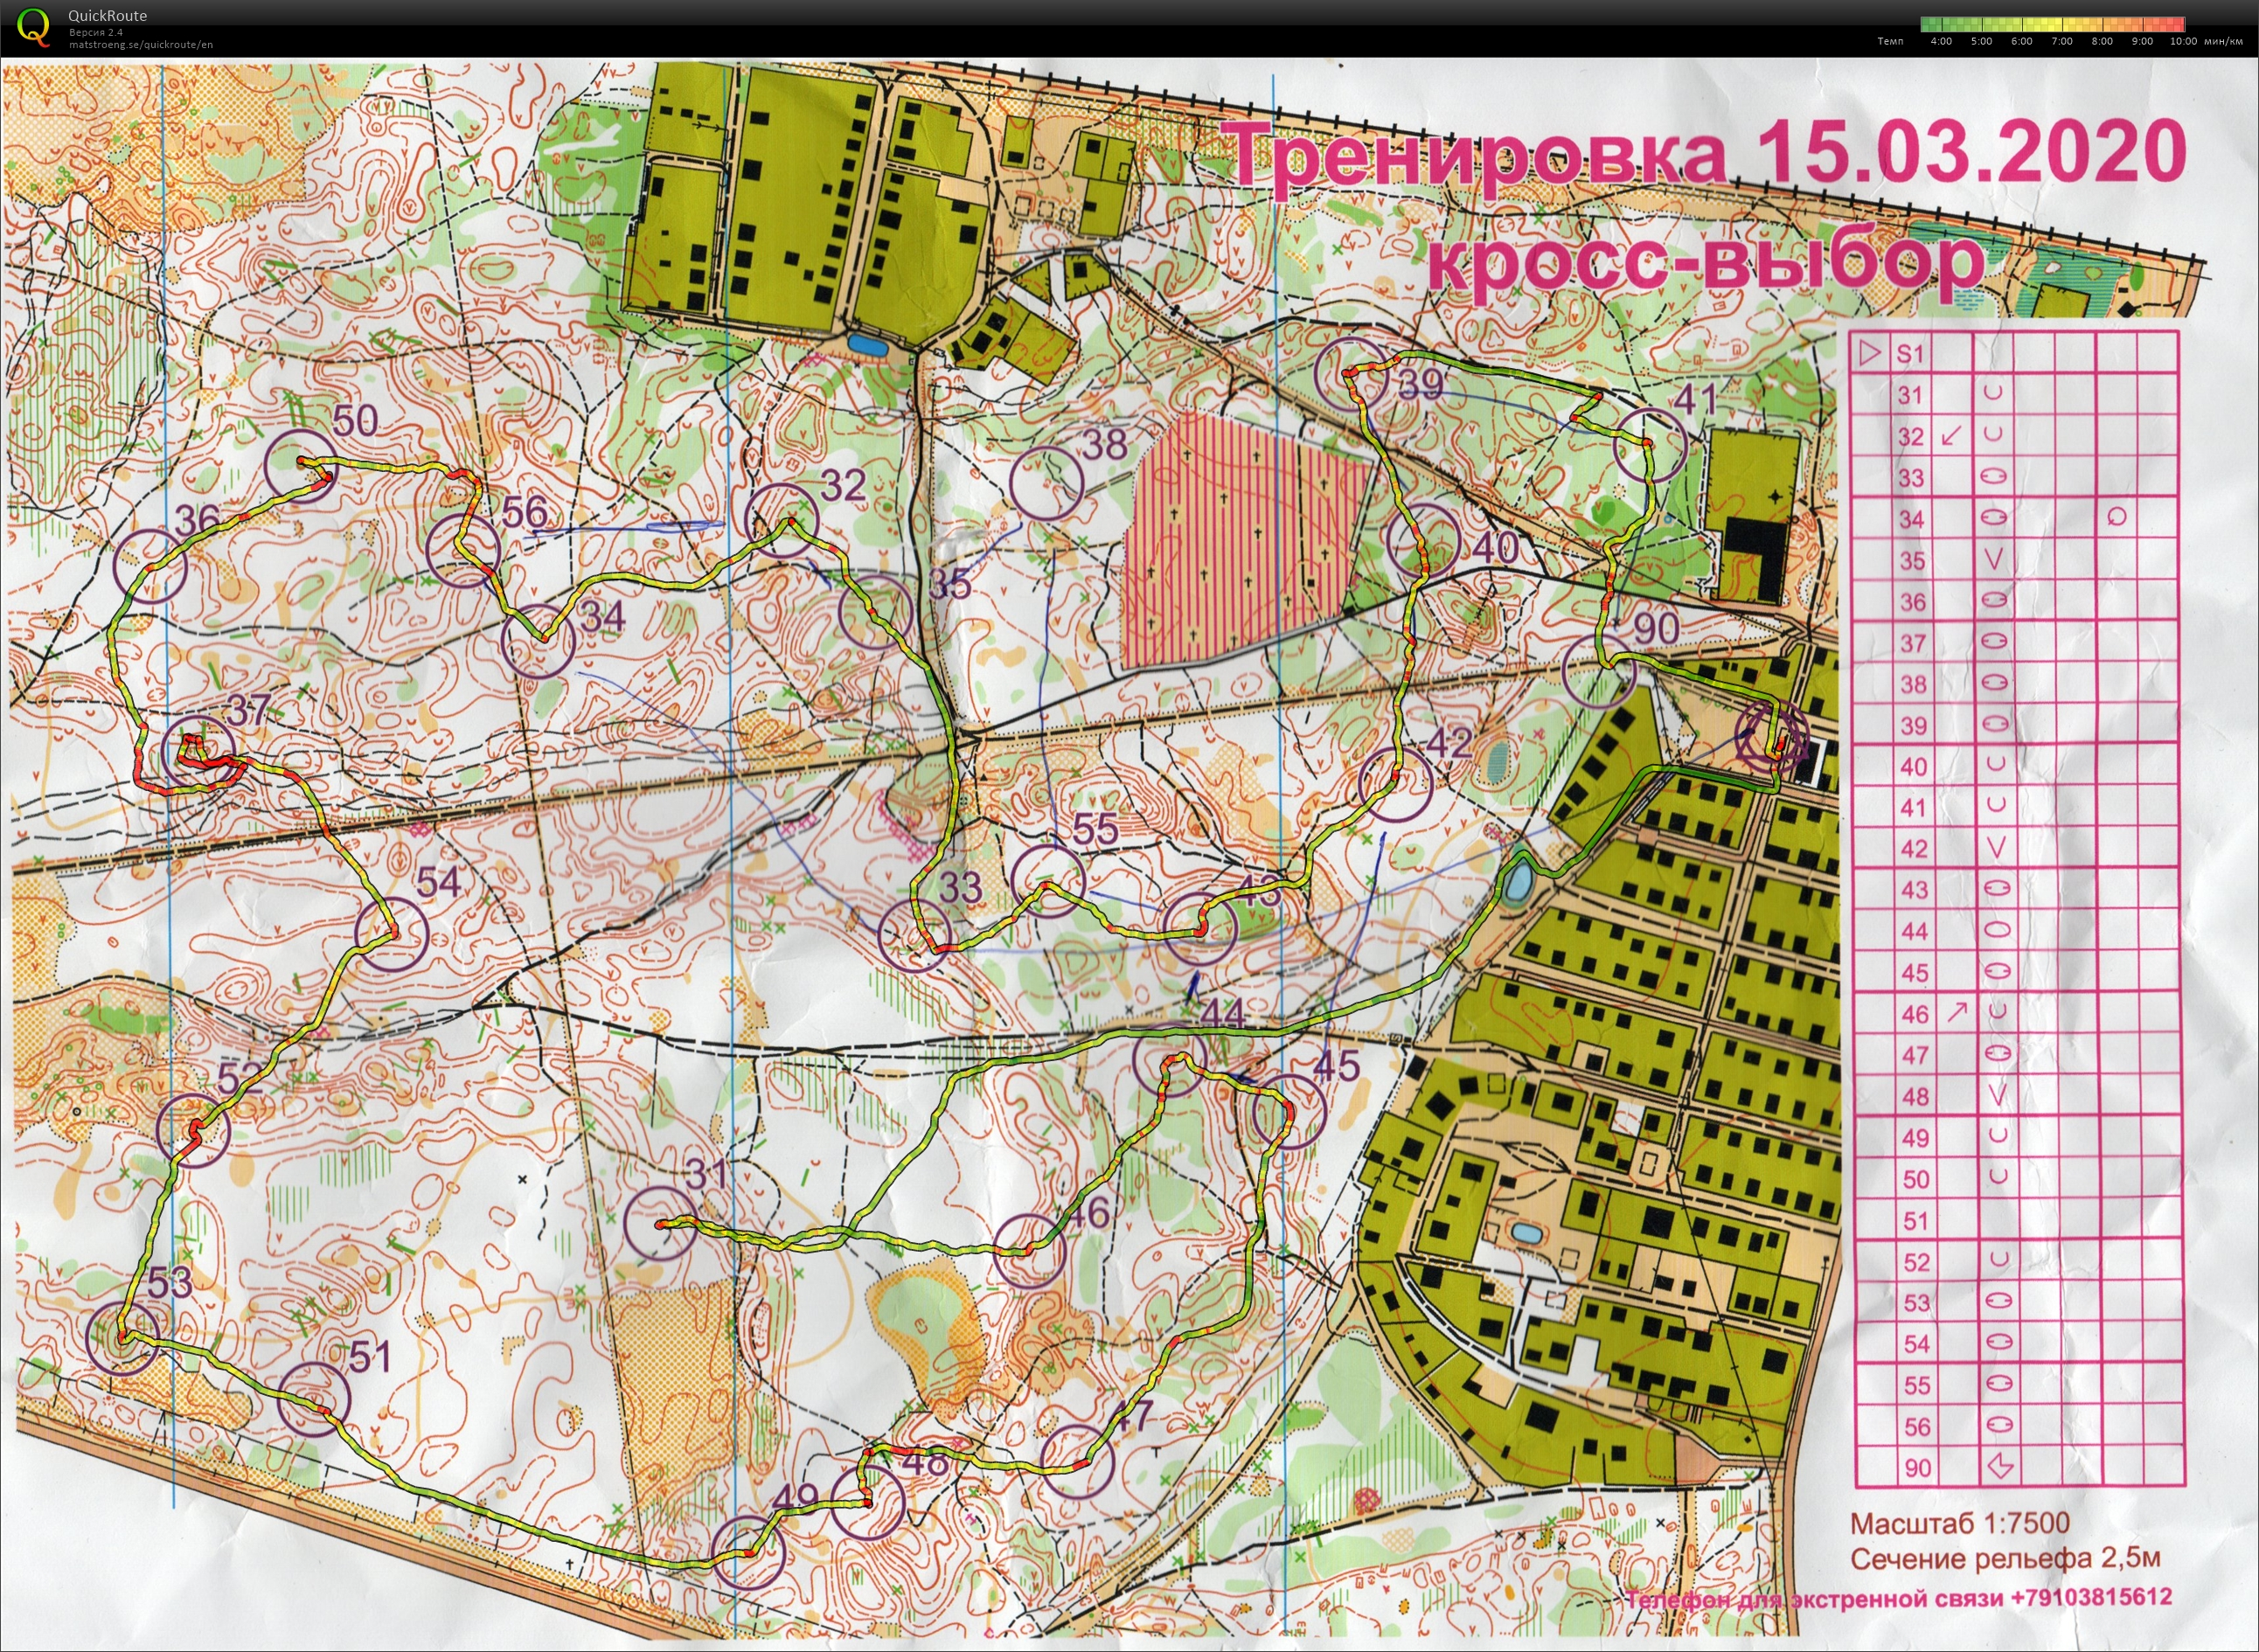 Map with track - Тренировочный старт, area - , from orienteering map archive of Александр Овчинников